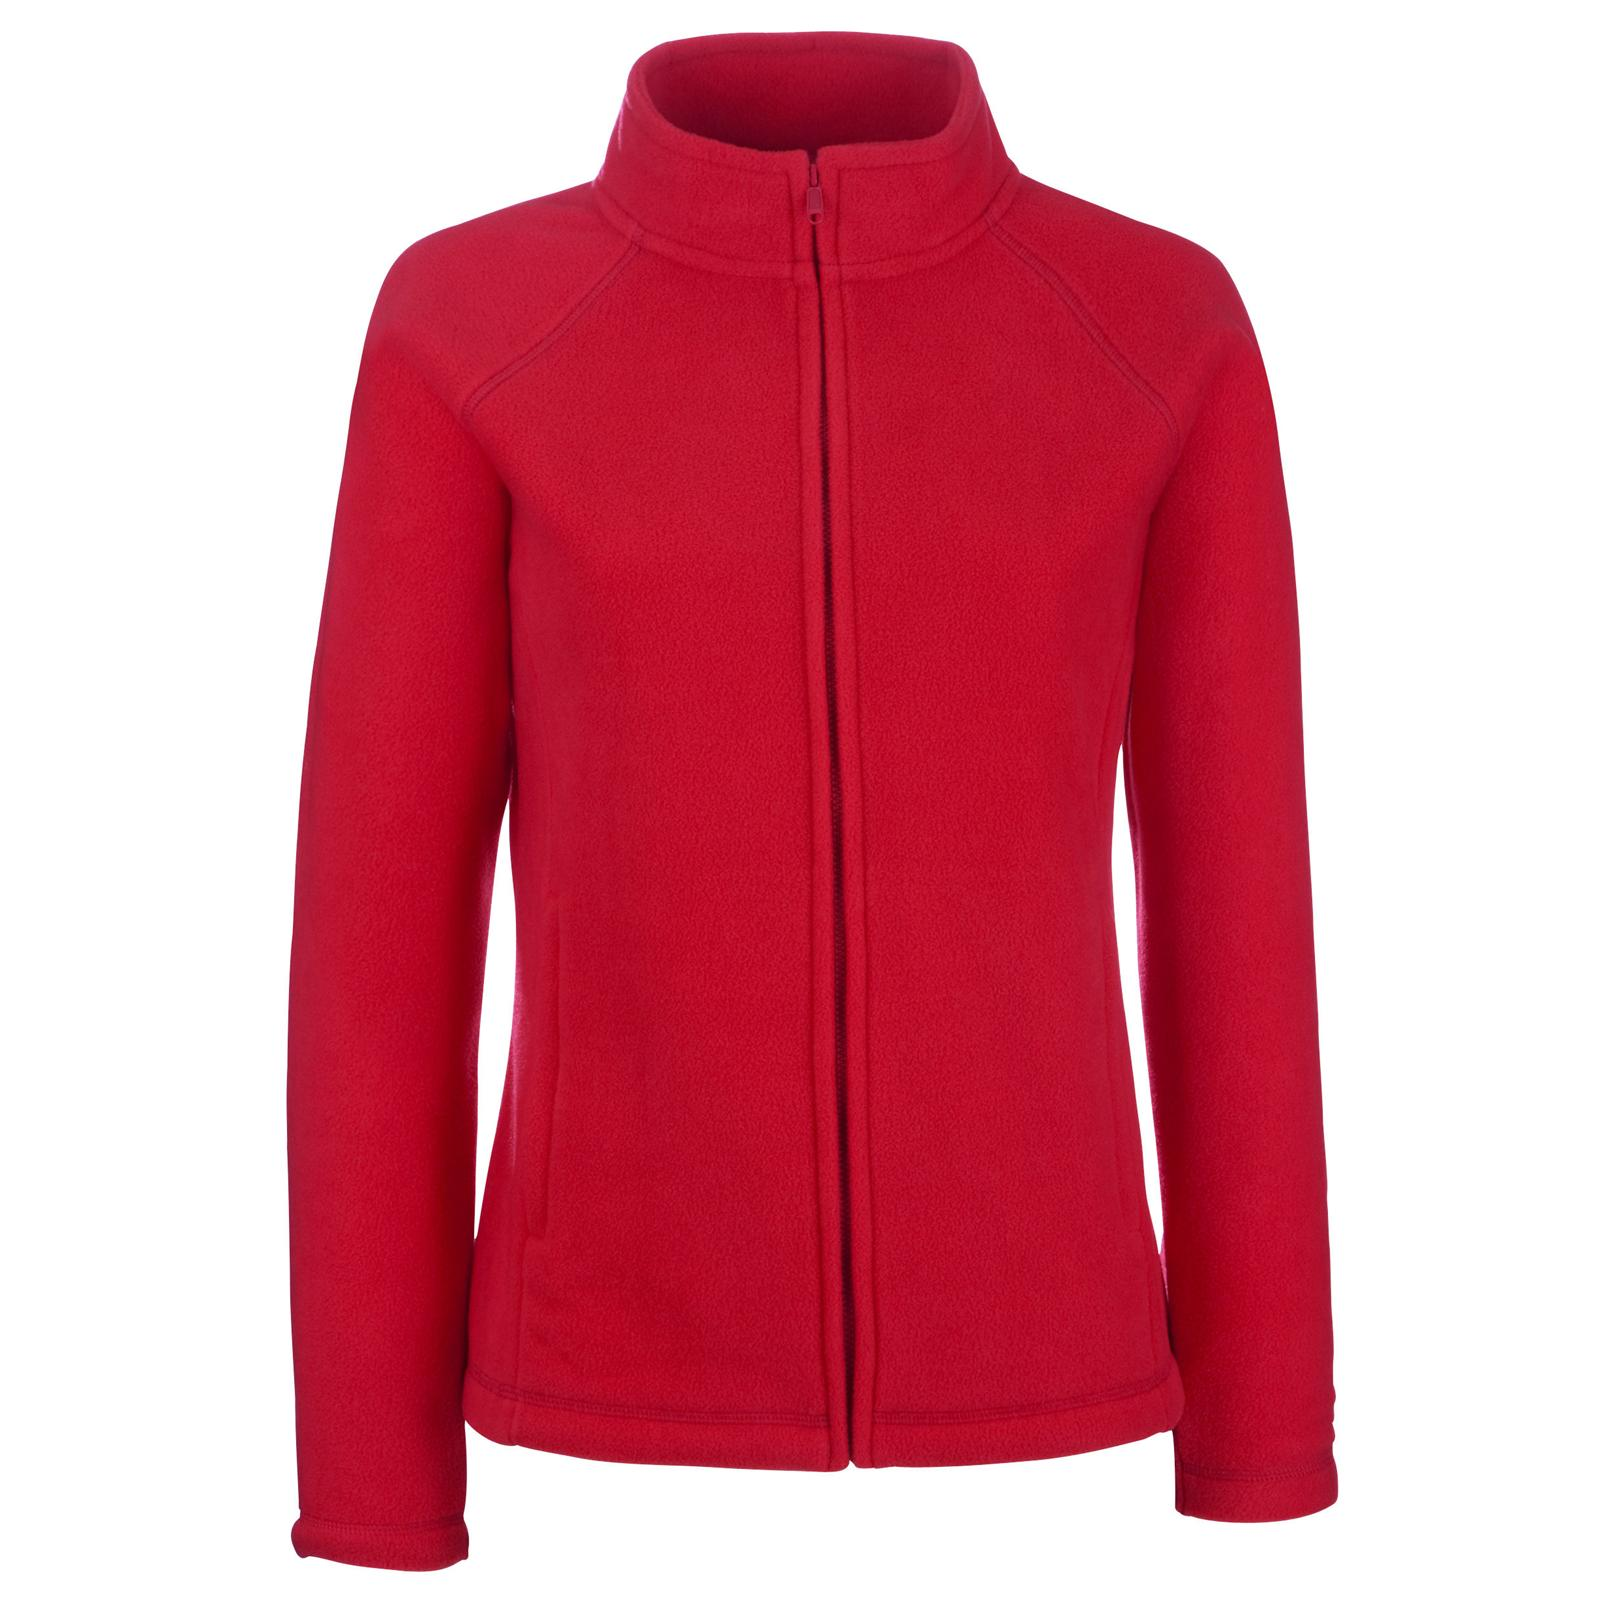 Custom Made Women's Fleece Jackets or Coats Get your outdoor essentials attended at AllStar Logo. When winter seems to be harsh, the only thing you crave for is a bit of luxury.